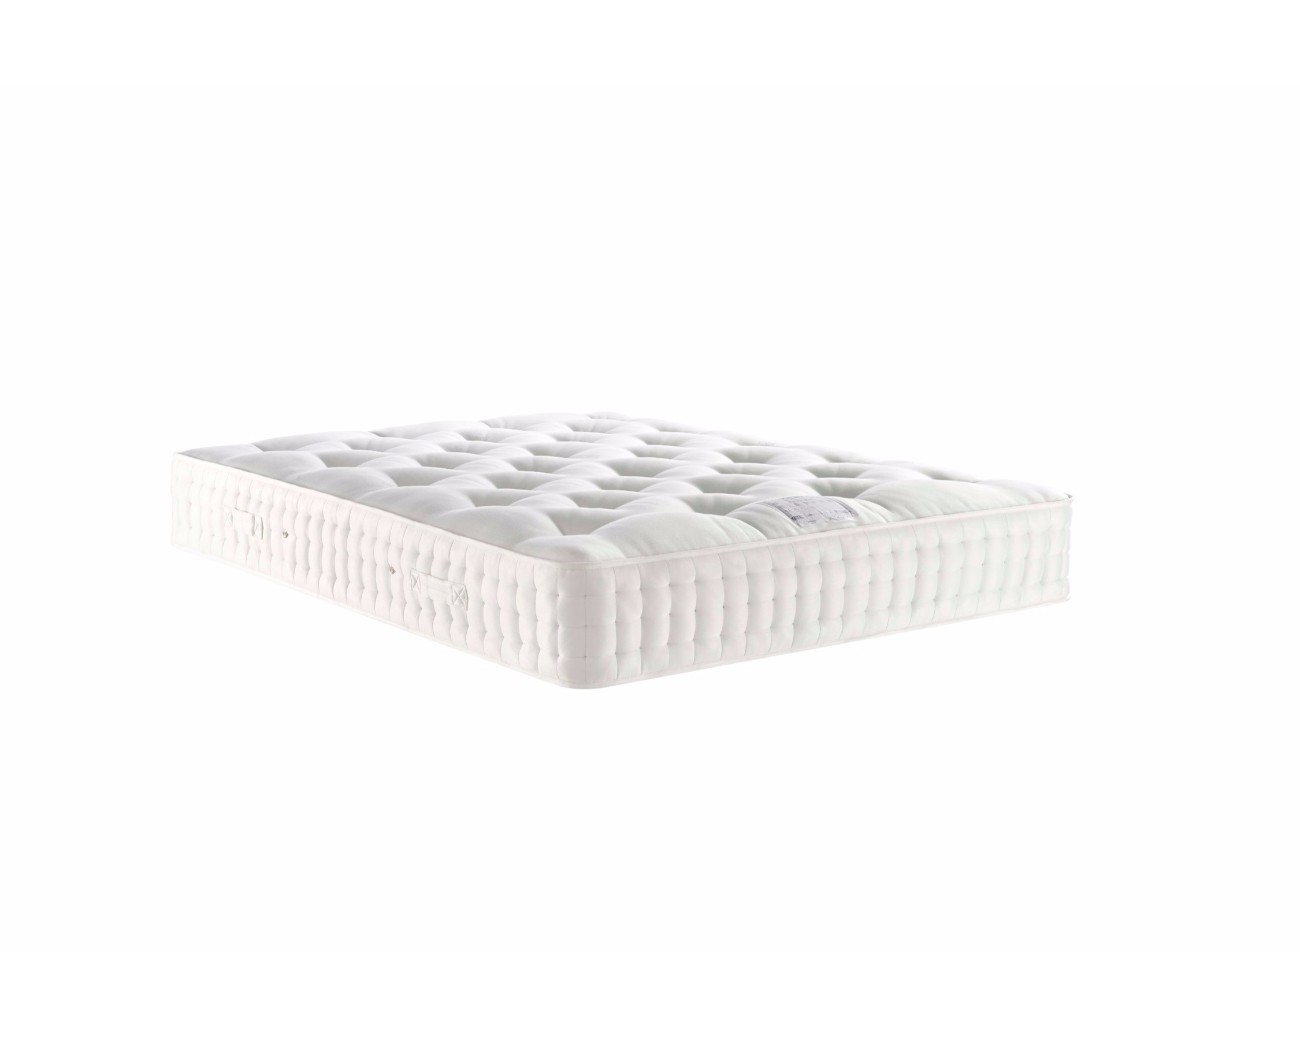 thumb_relyon_marlborough-mattress